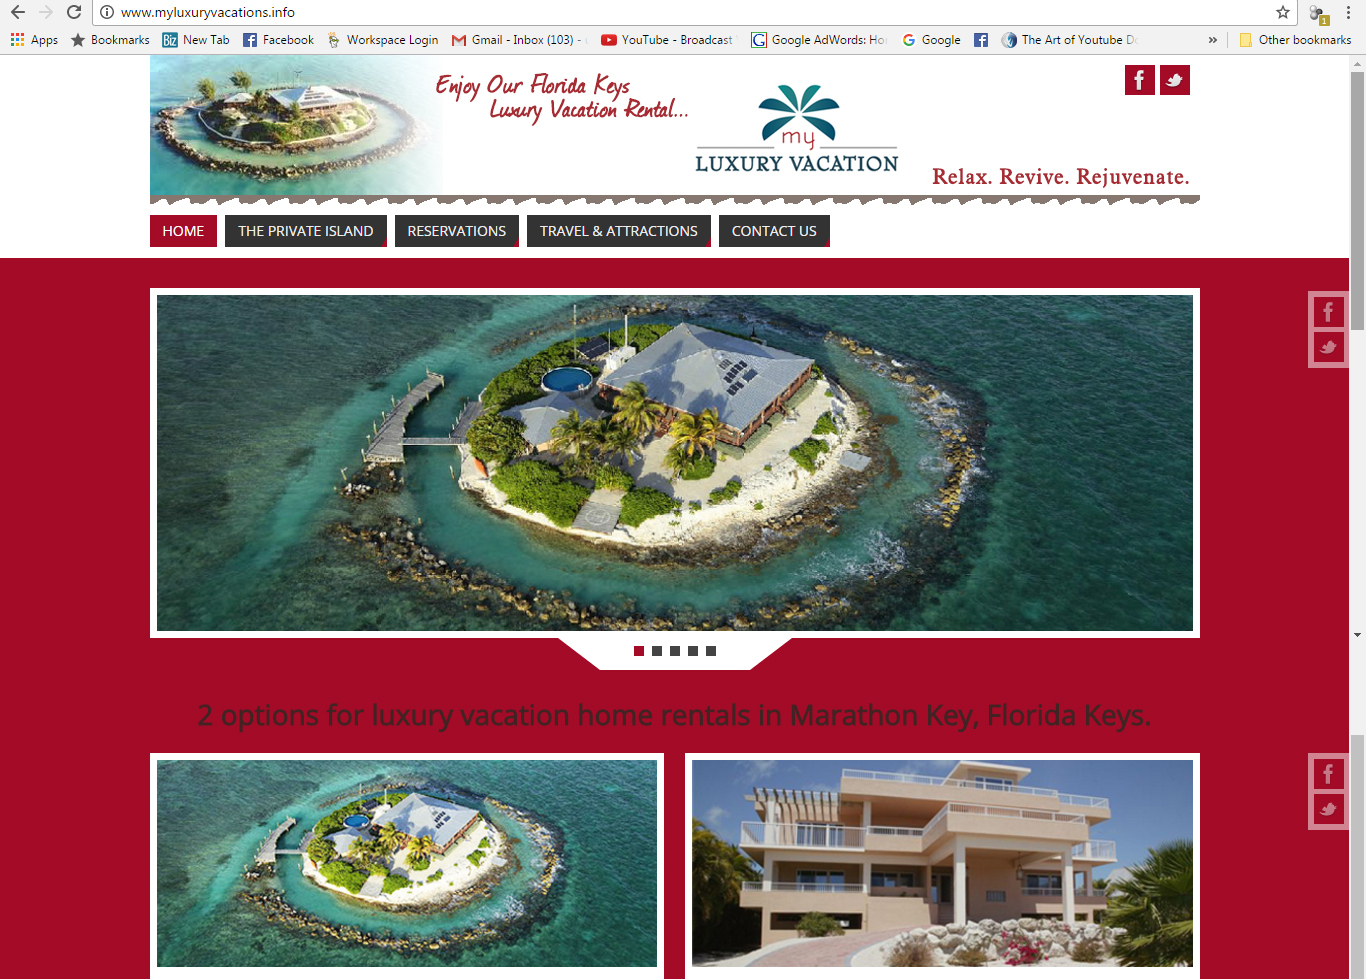 My Luxury Vacation Website